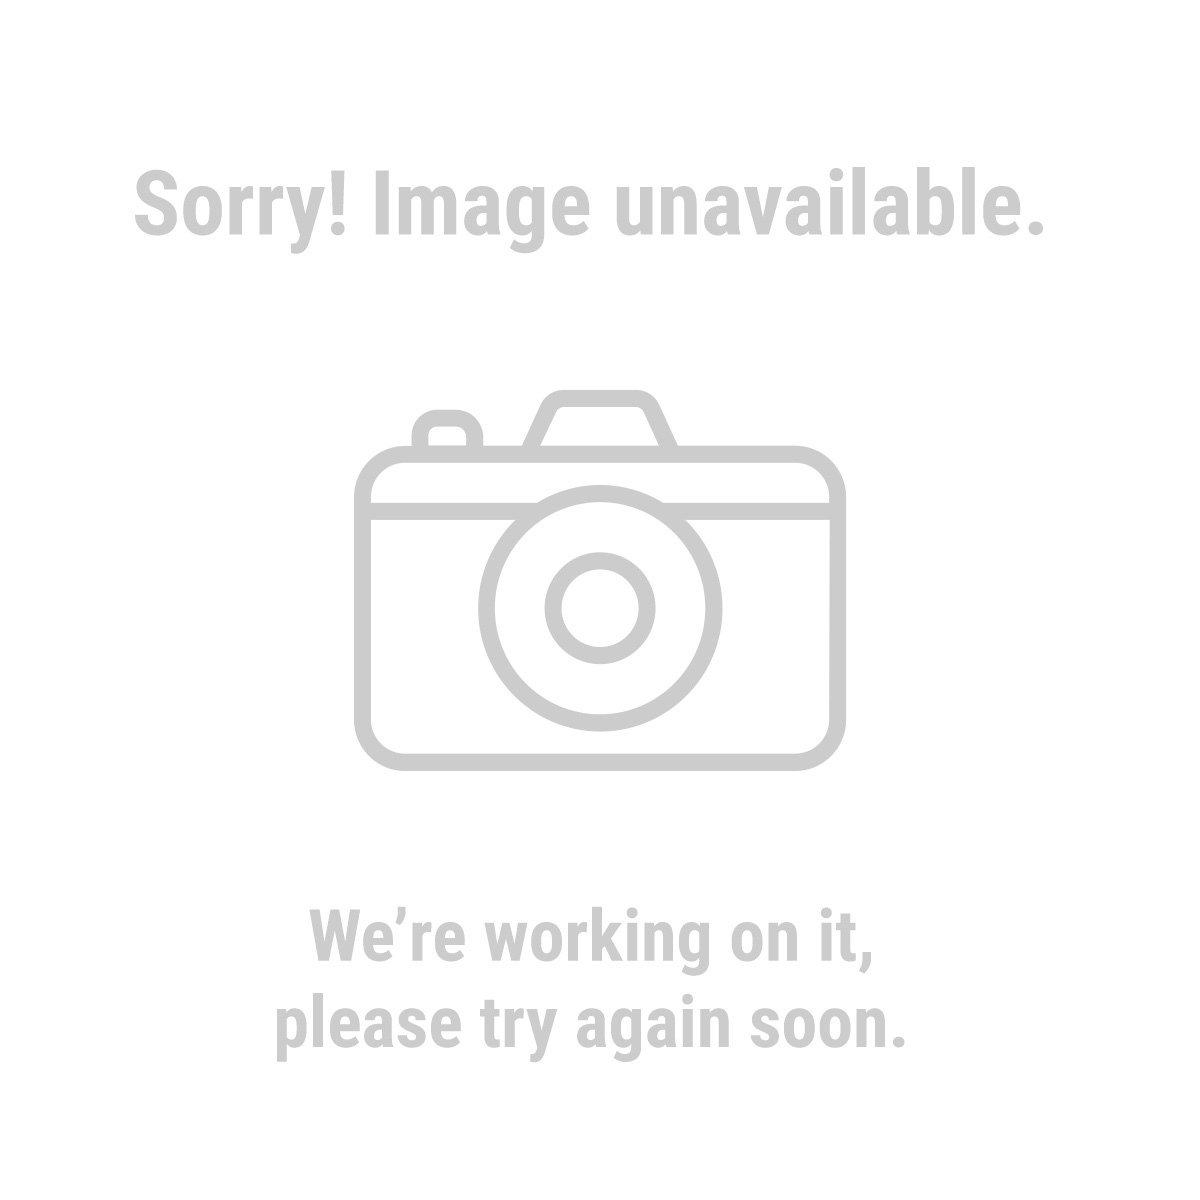 Storehouse 67679 320 Piece Stainless Steel Sheet Metal Screw Set